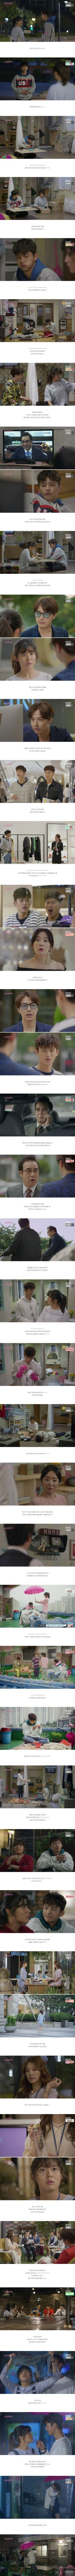 Added episode 4 captures for the Korean drama 'Shopping King Louis'.